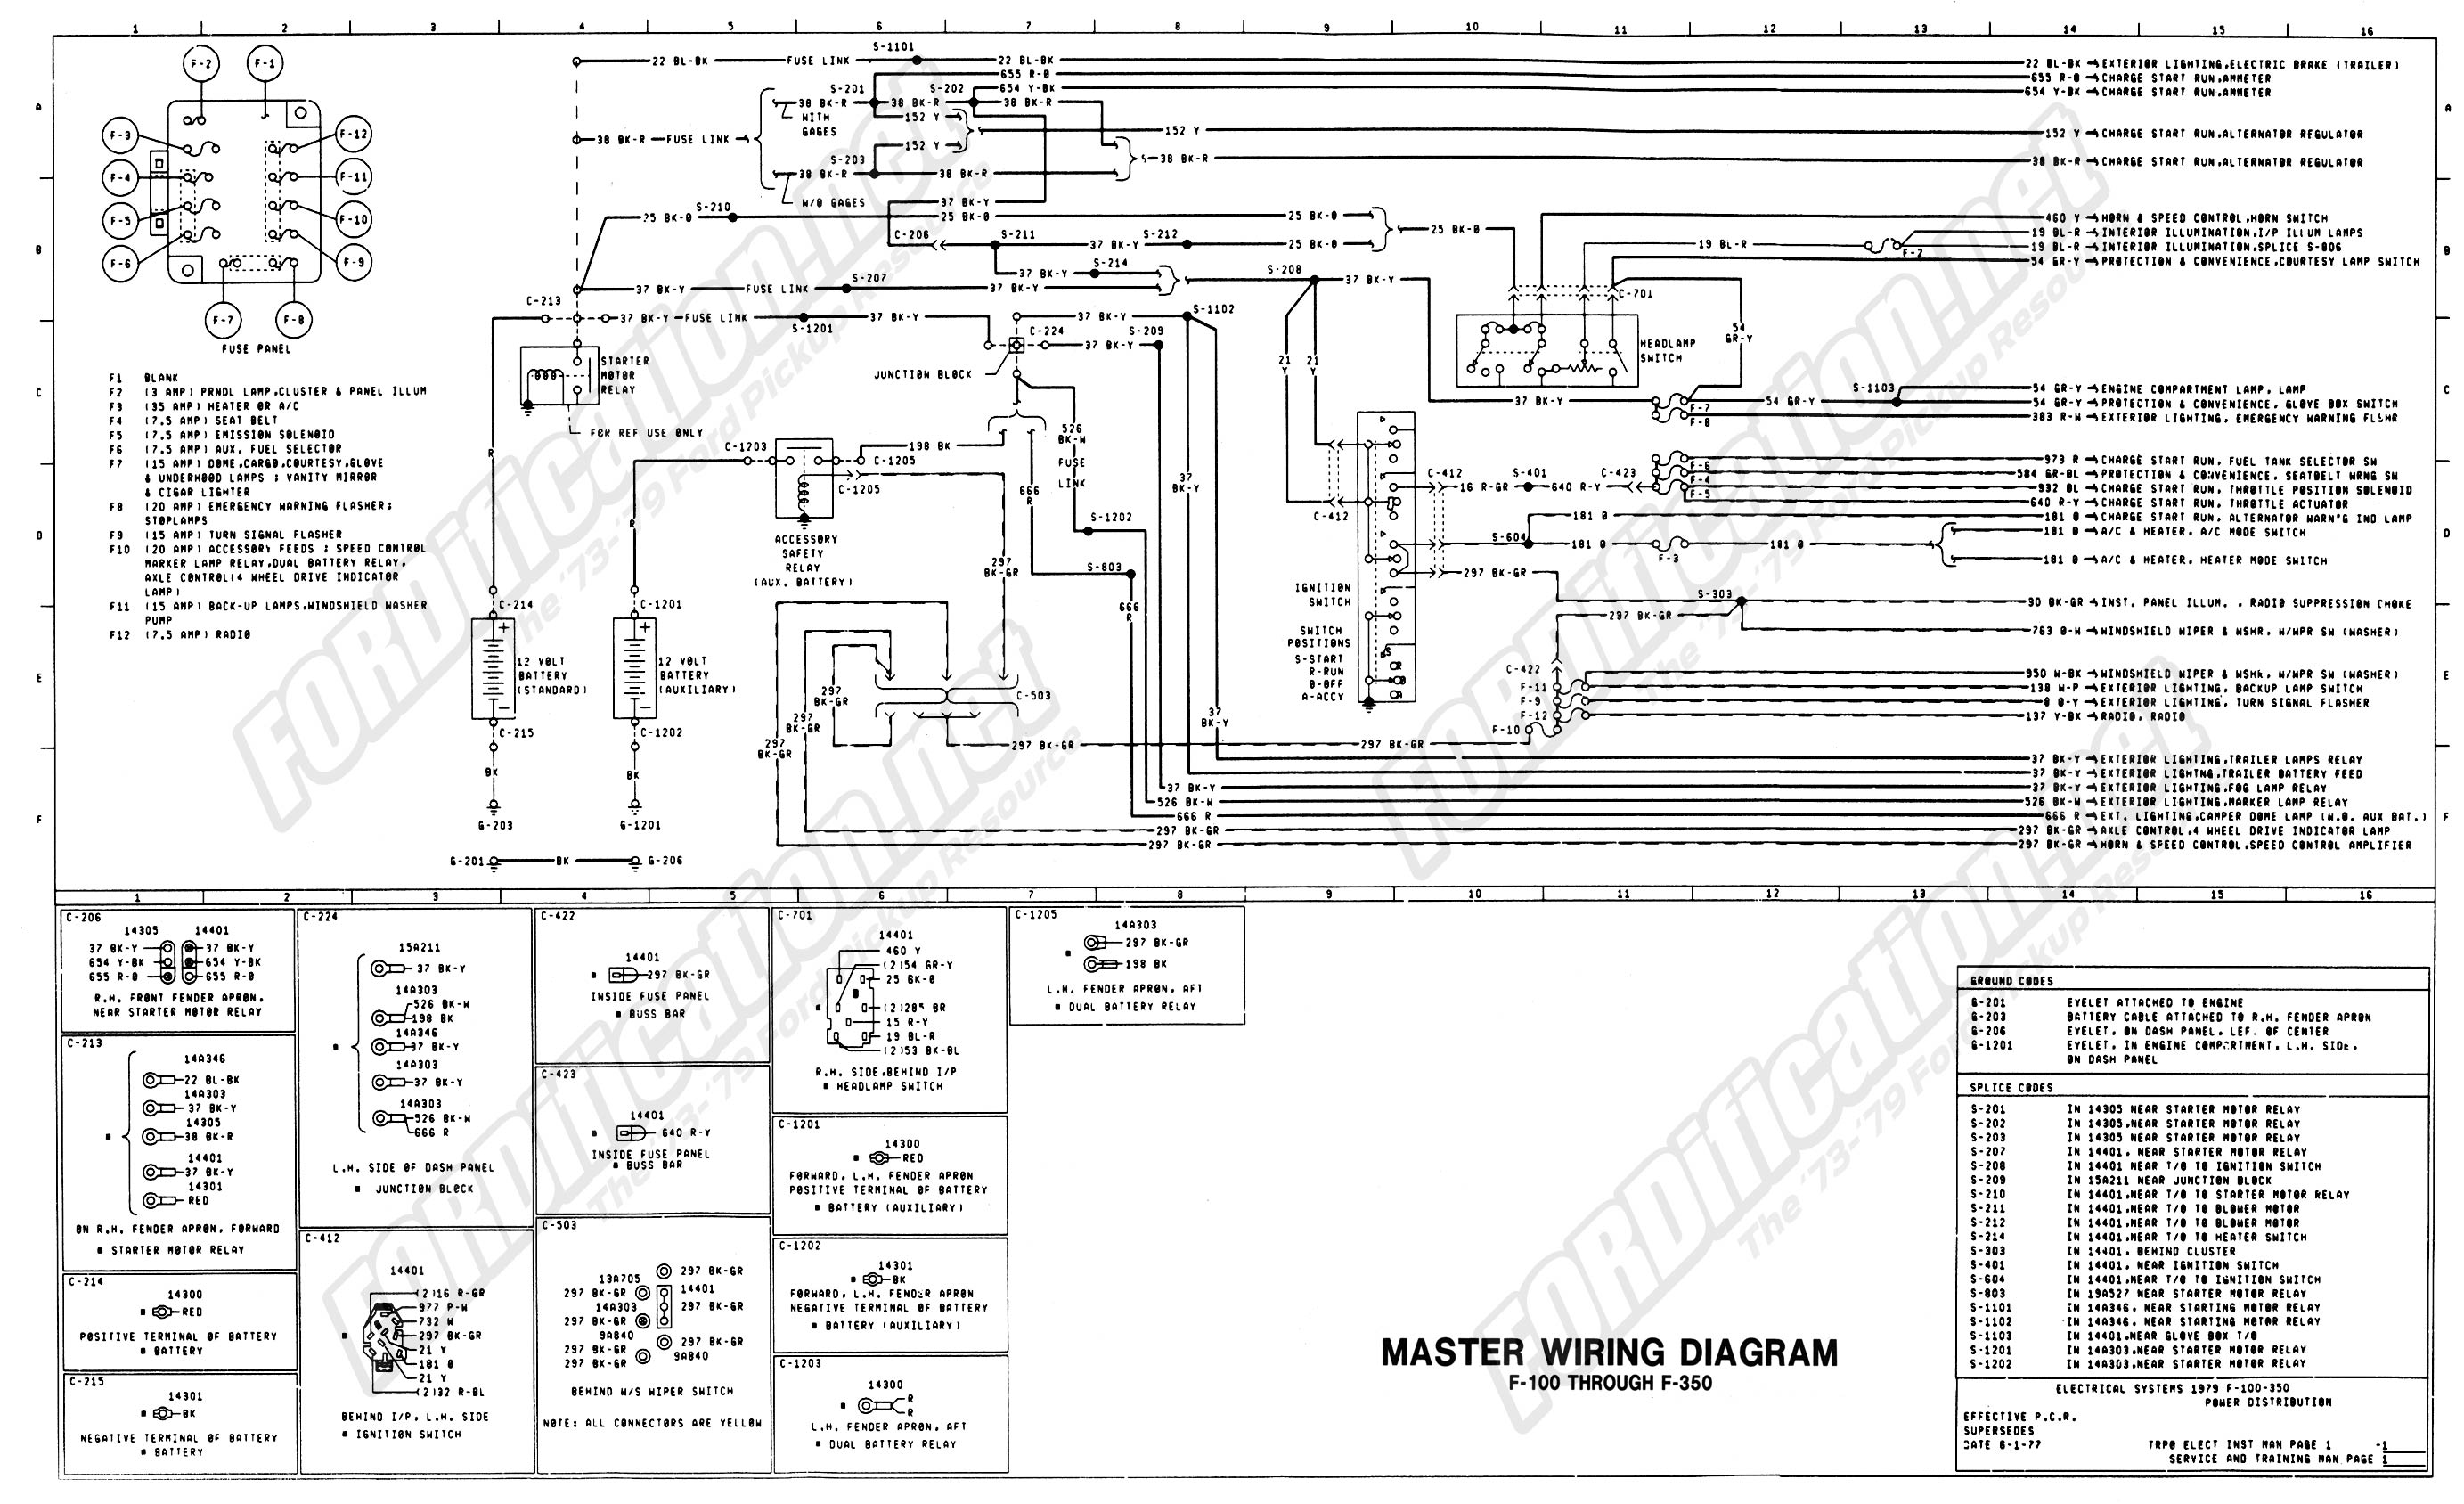 wiring_79master_1of9 1973 1979 ford truck wiring diagrams & schematics fordification net 1979 ford bronco fuse box diagram at gsmx.co